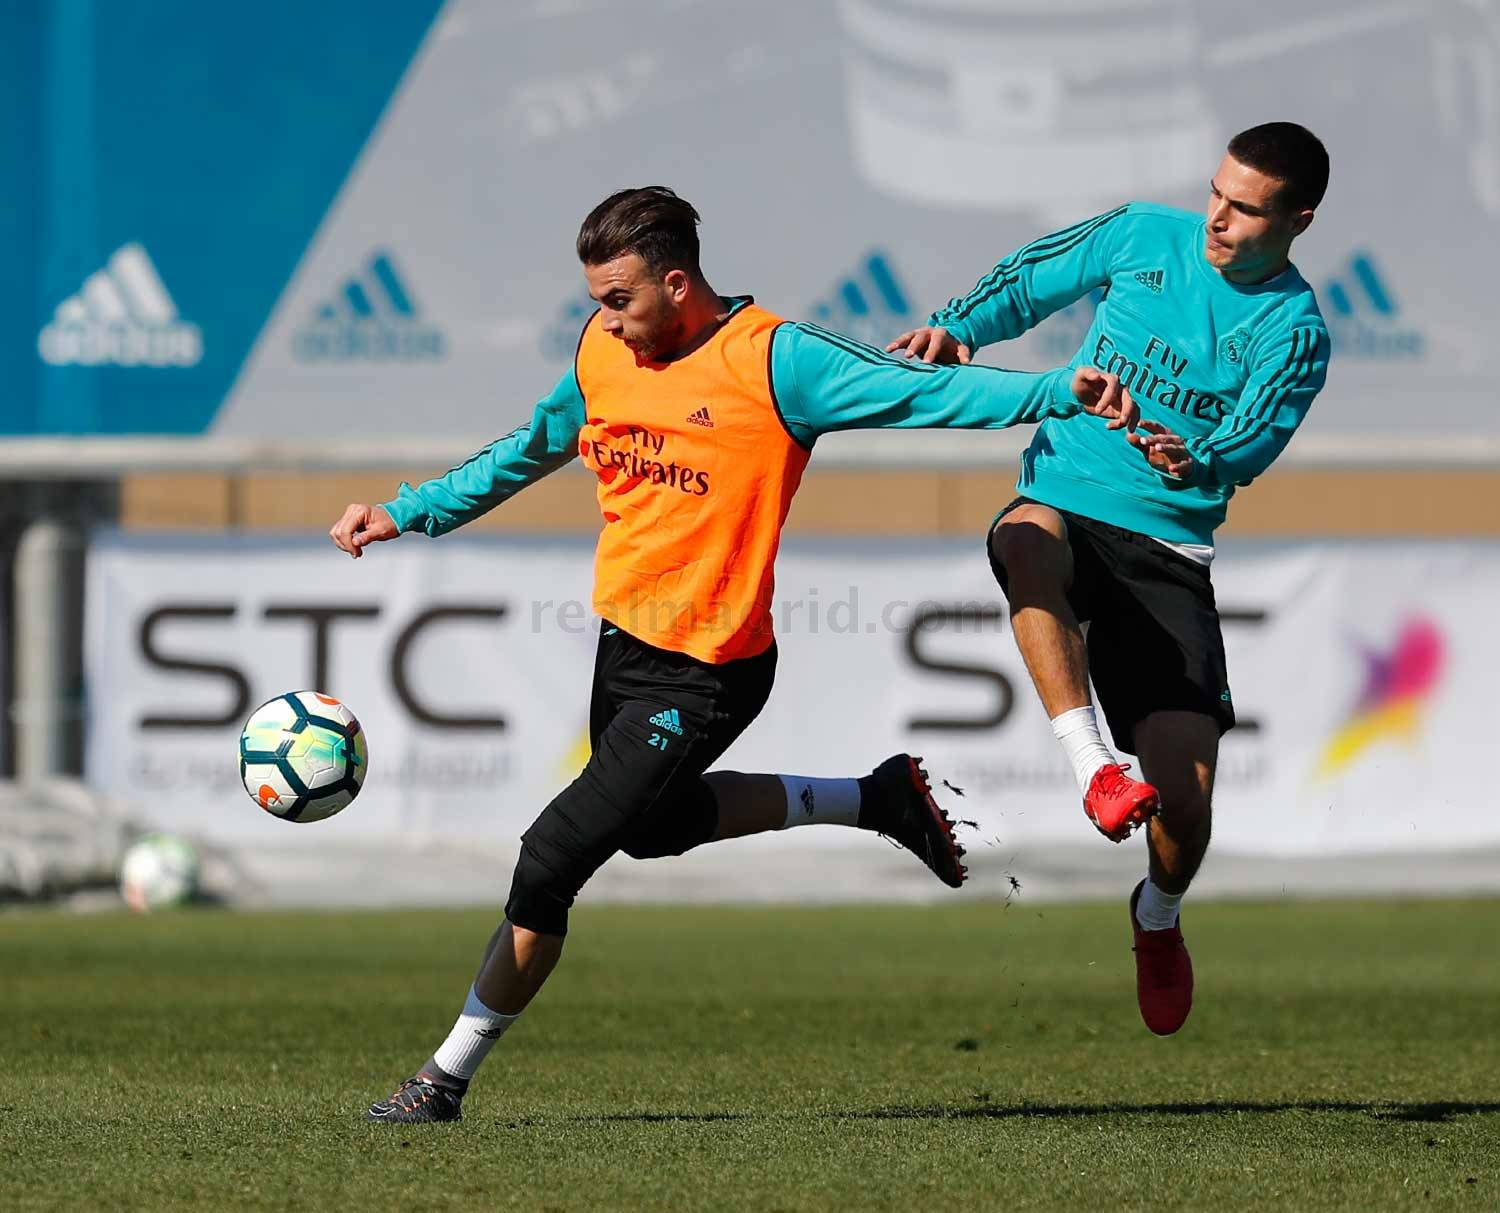 Real Madrid - Entrenamiento del Real Madrid - 22-02-2018